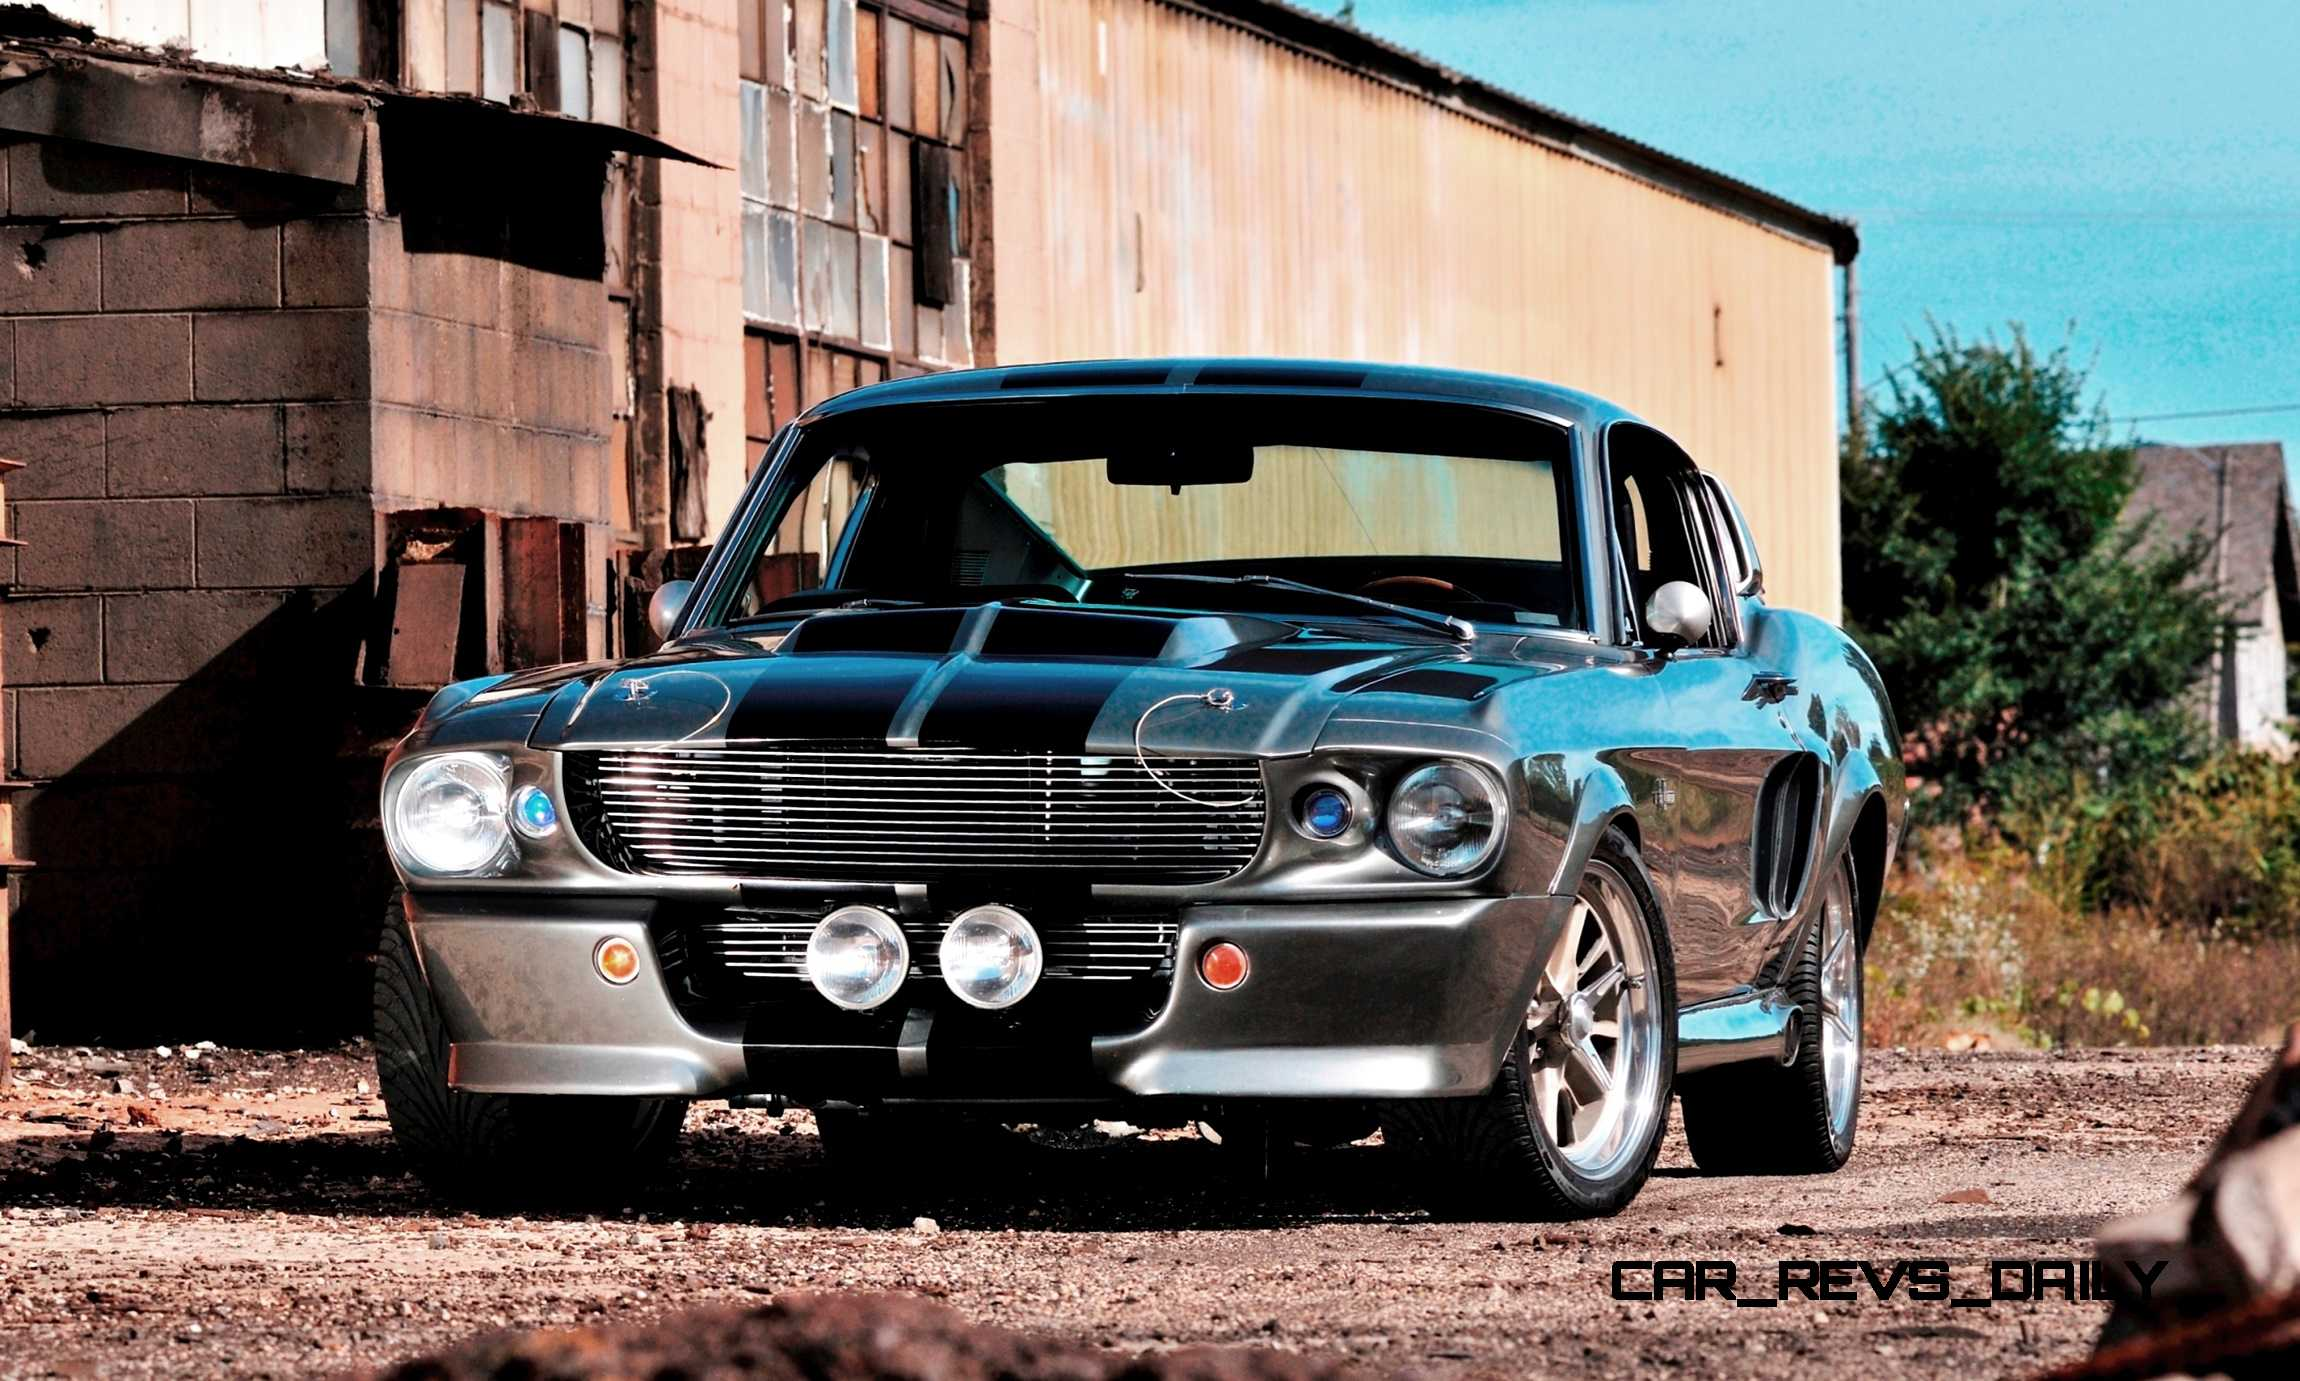 Ford Mustang Shelby Gt500 Eleanor Wallpaper Hd 1967 Shelby Gt500 Eleanor Mustang